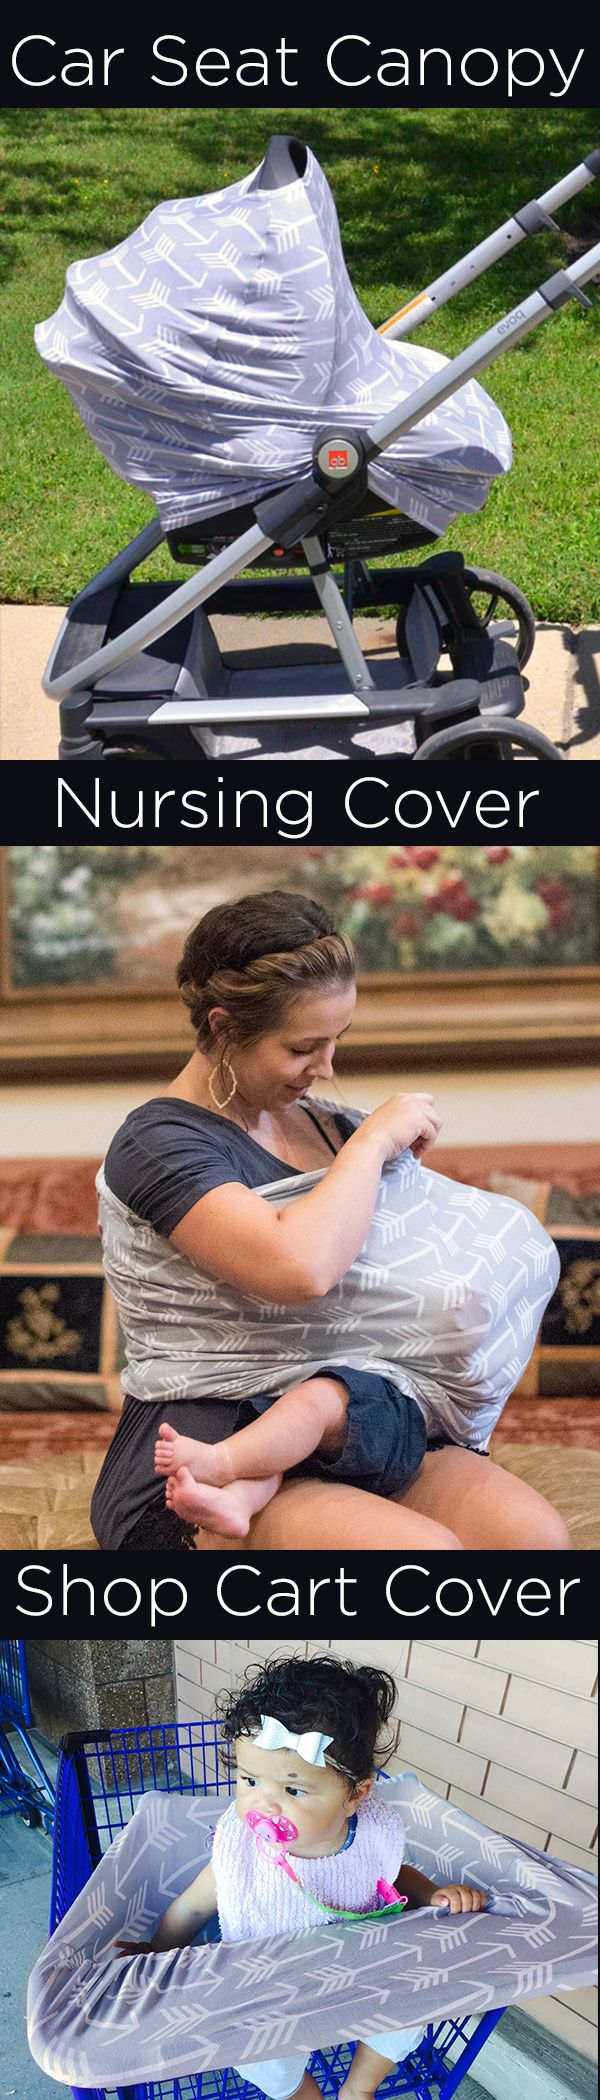 Multi-Use Car Seat Canopy, Nursing/ Breastfeeding Cover, and Shopping Cart Cover https://www.amazon.com/Stretchy-Carseat-Shopping-Infinity-Breastfeeding/dp/B01CTOACOI?m=A3PYMCL43VTCQ2 Now available on Amazon with FREE Prime Shipping!